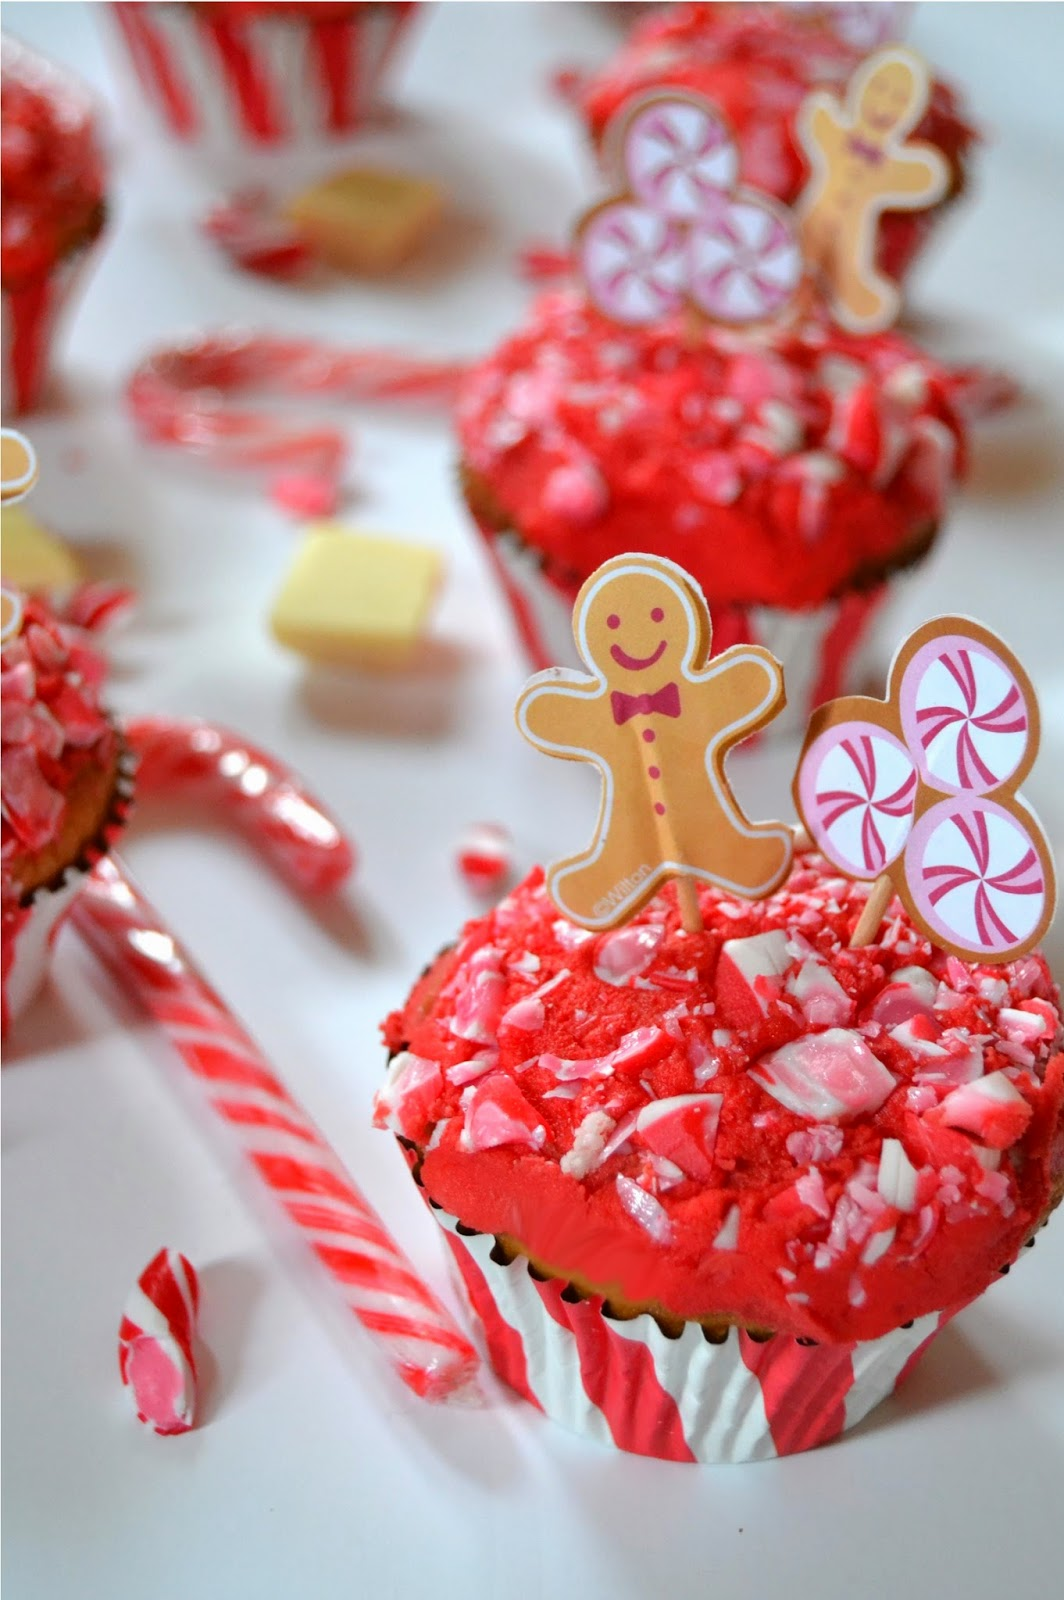 White Chocolate Cupcakes with Salted Peppermint Frosting